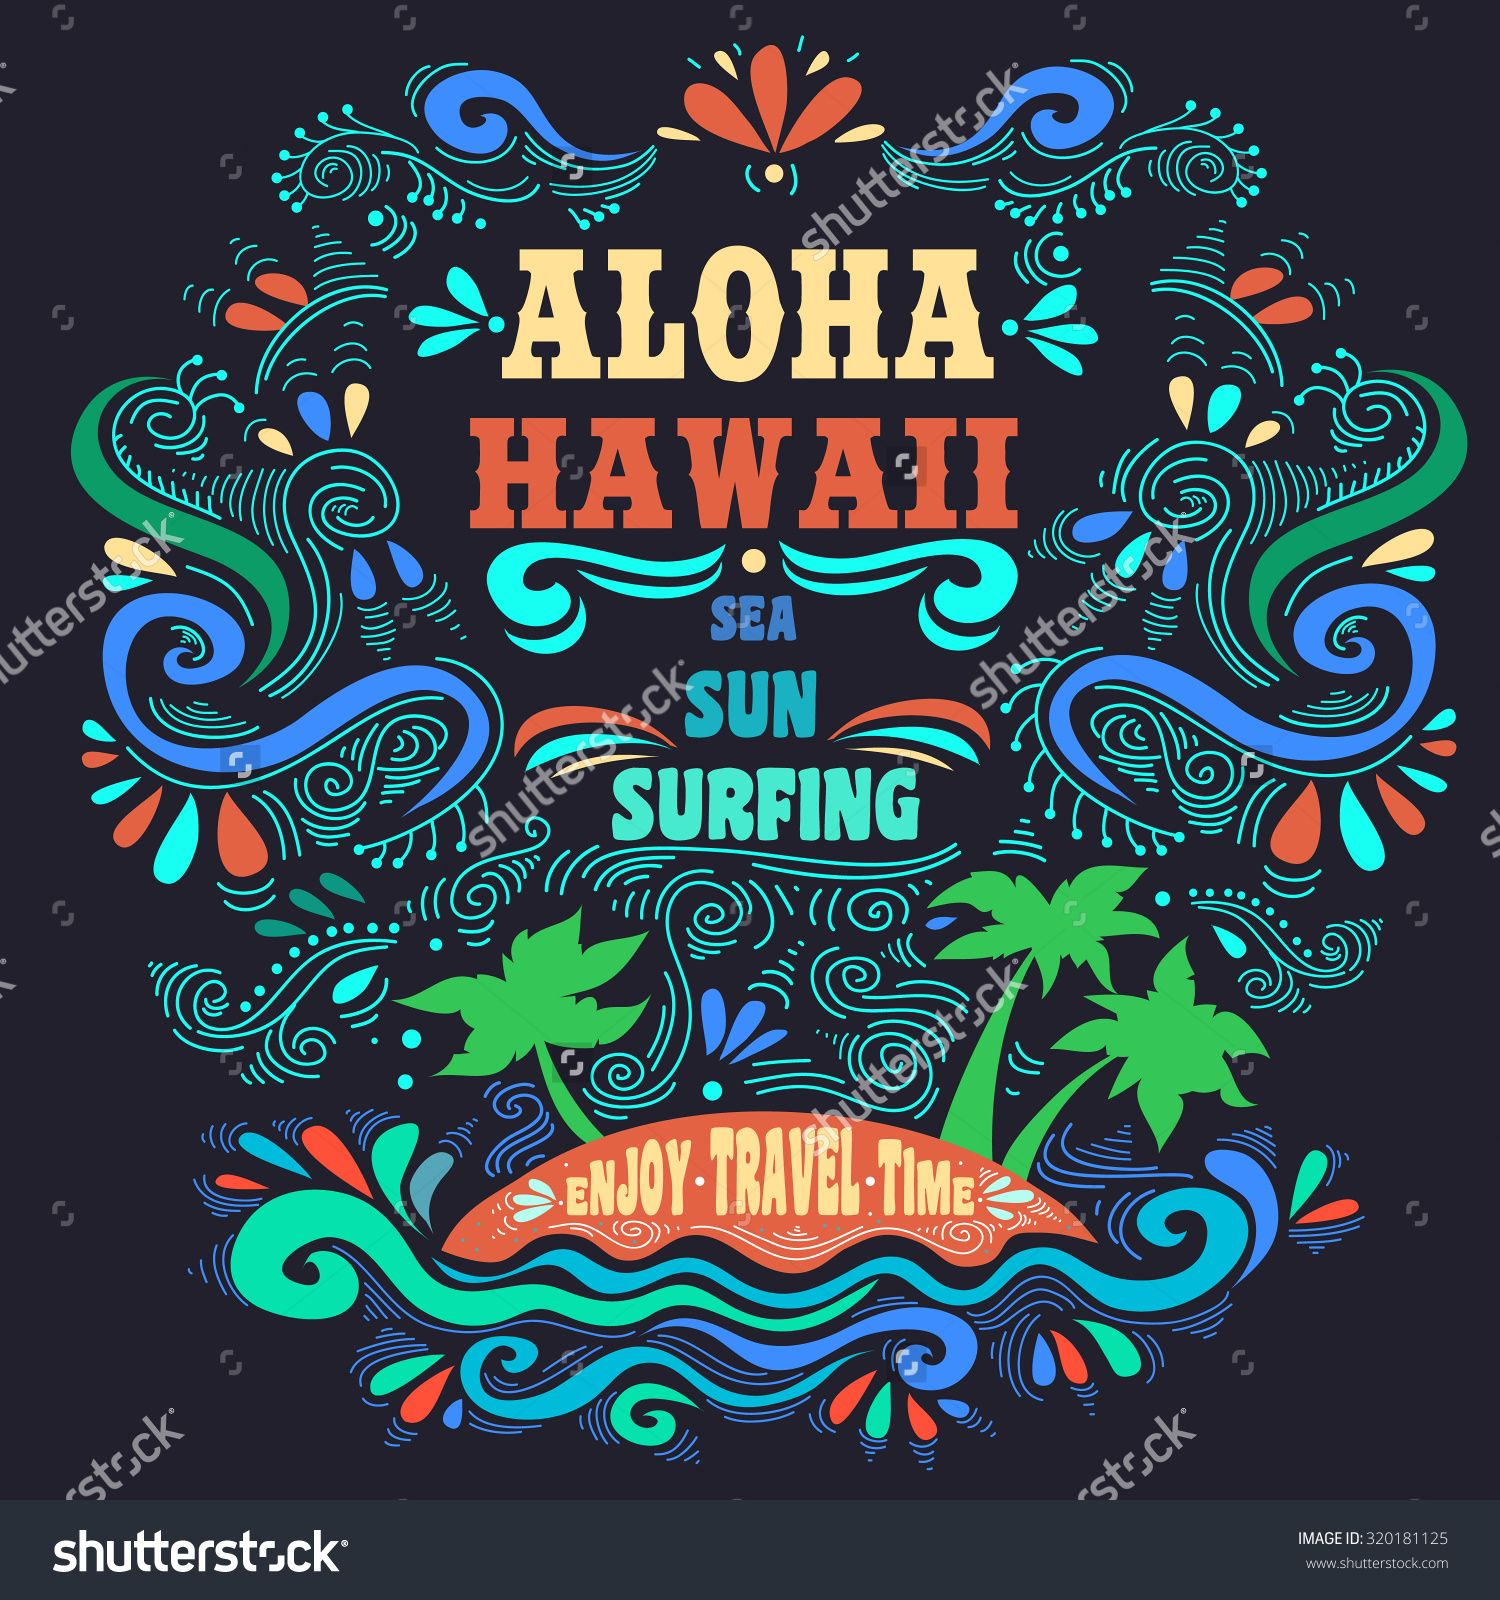 T shirt design hawaii - Aloha Hawaii Hand Draw Vintage Lettering With Island Inspirational And Motivational Tropical Print For T Shirts And Bags Hipster Style Stock Vector